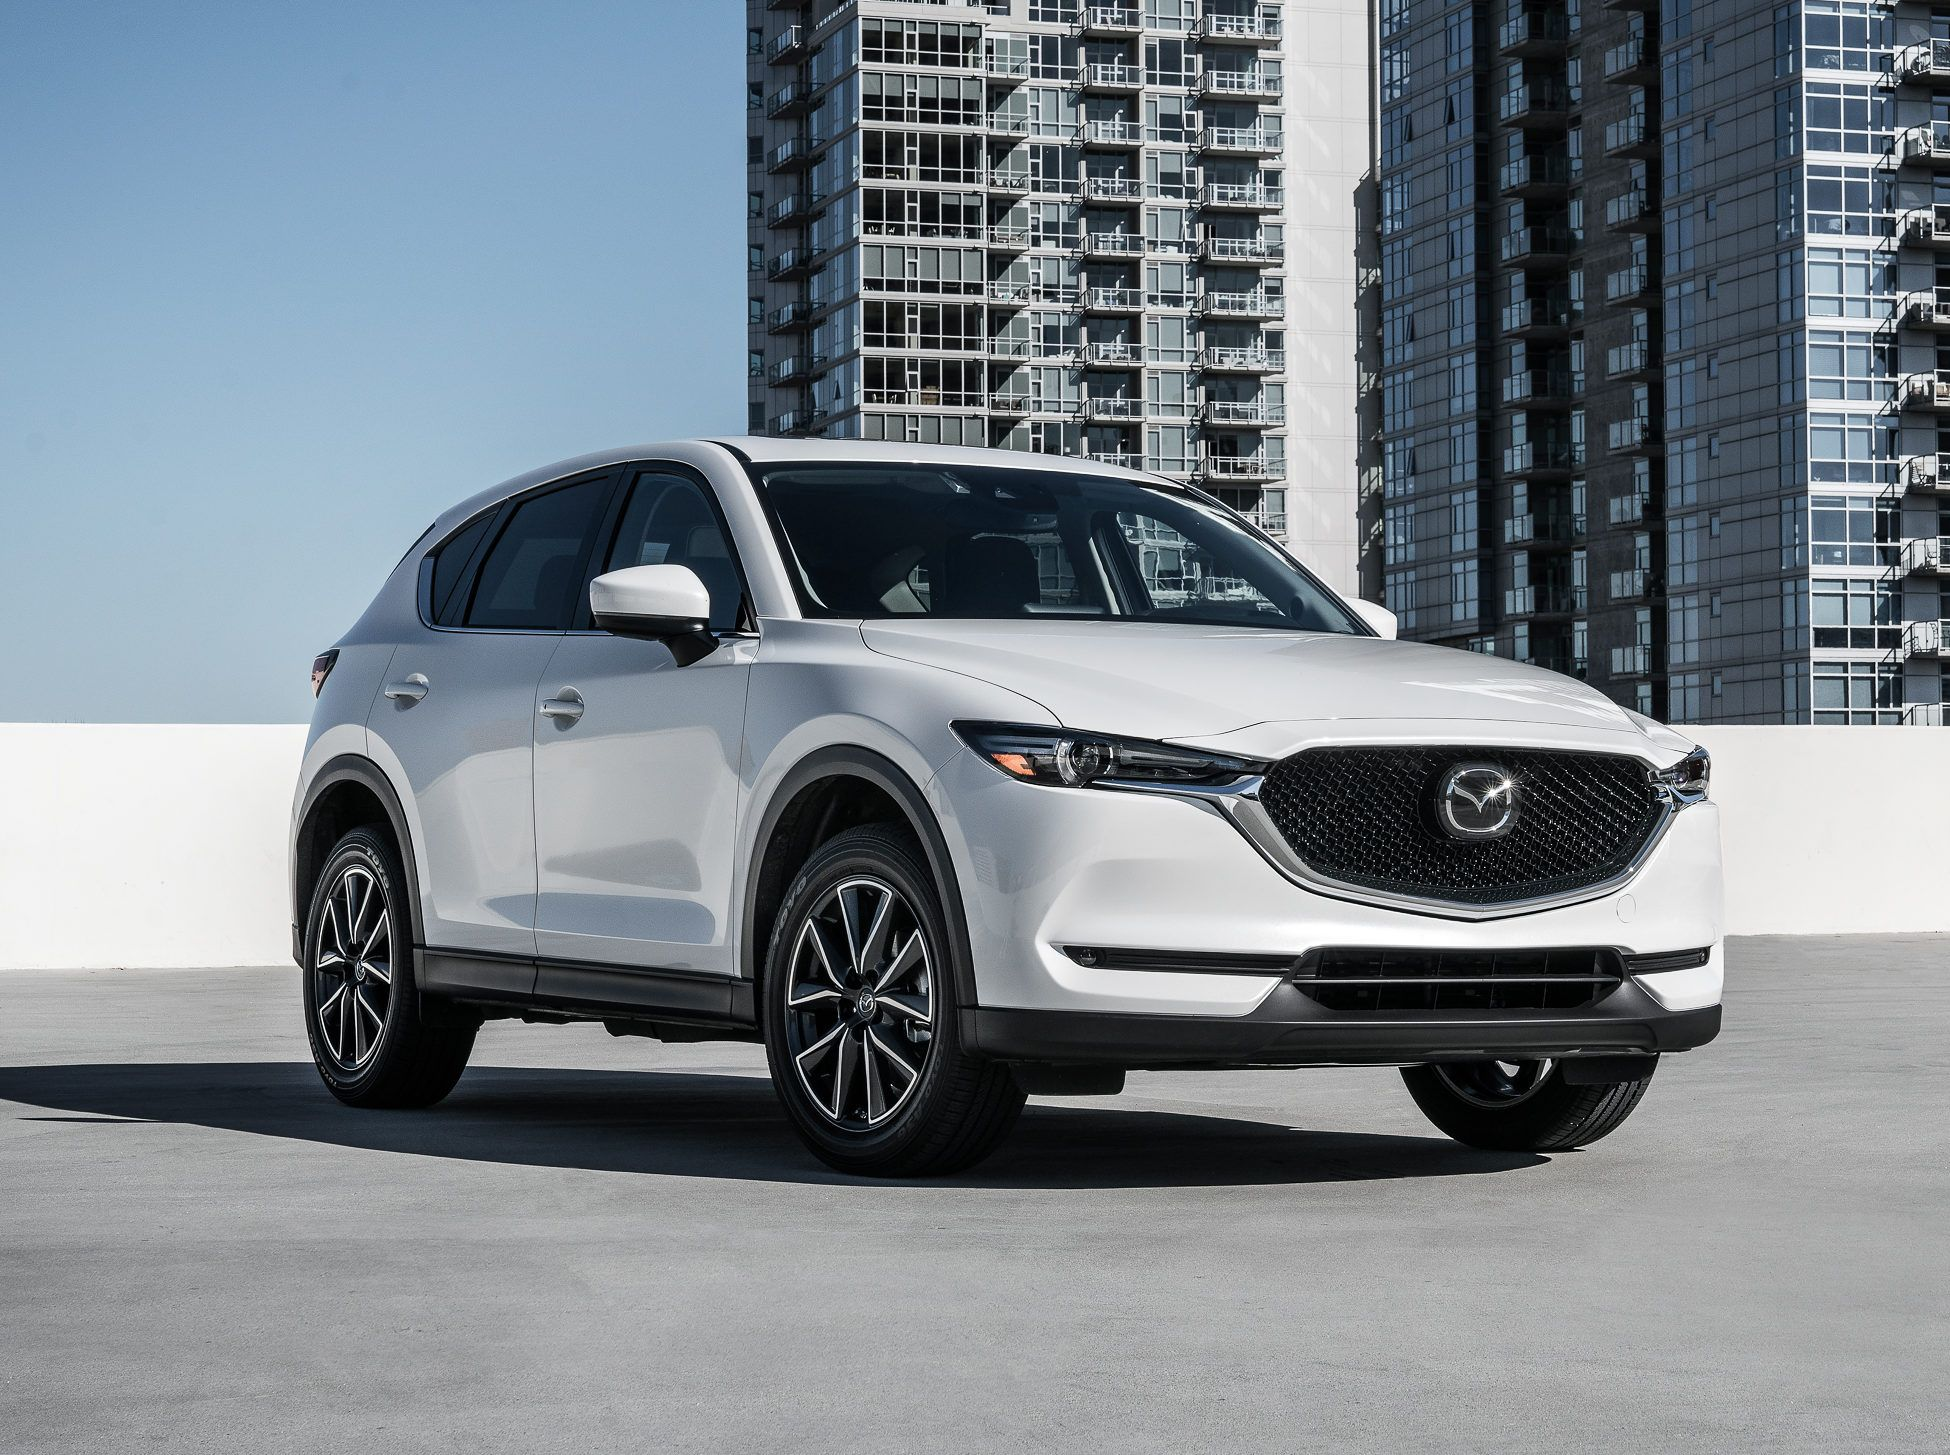 Mazda Updates Bulletin Warning Against Painting Ground Point On Fender Stays Repairer Driven Newsrepairer Driven News Mazda Cx5 Mazda Suv Mazda Cars